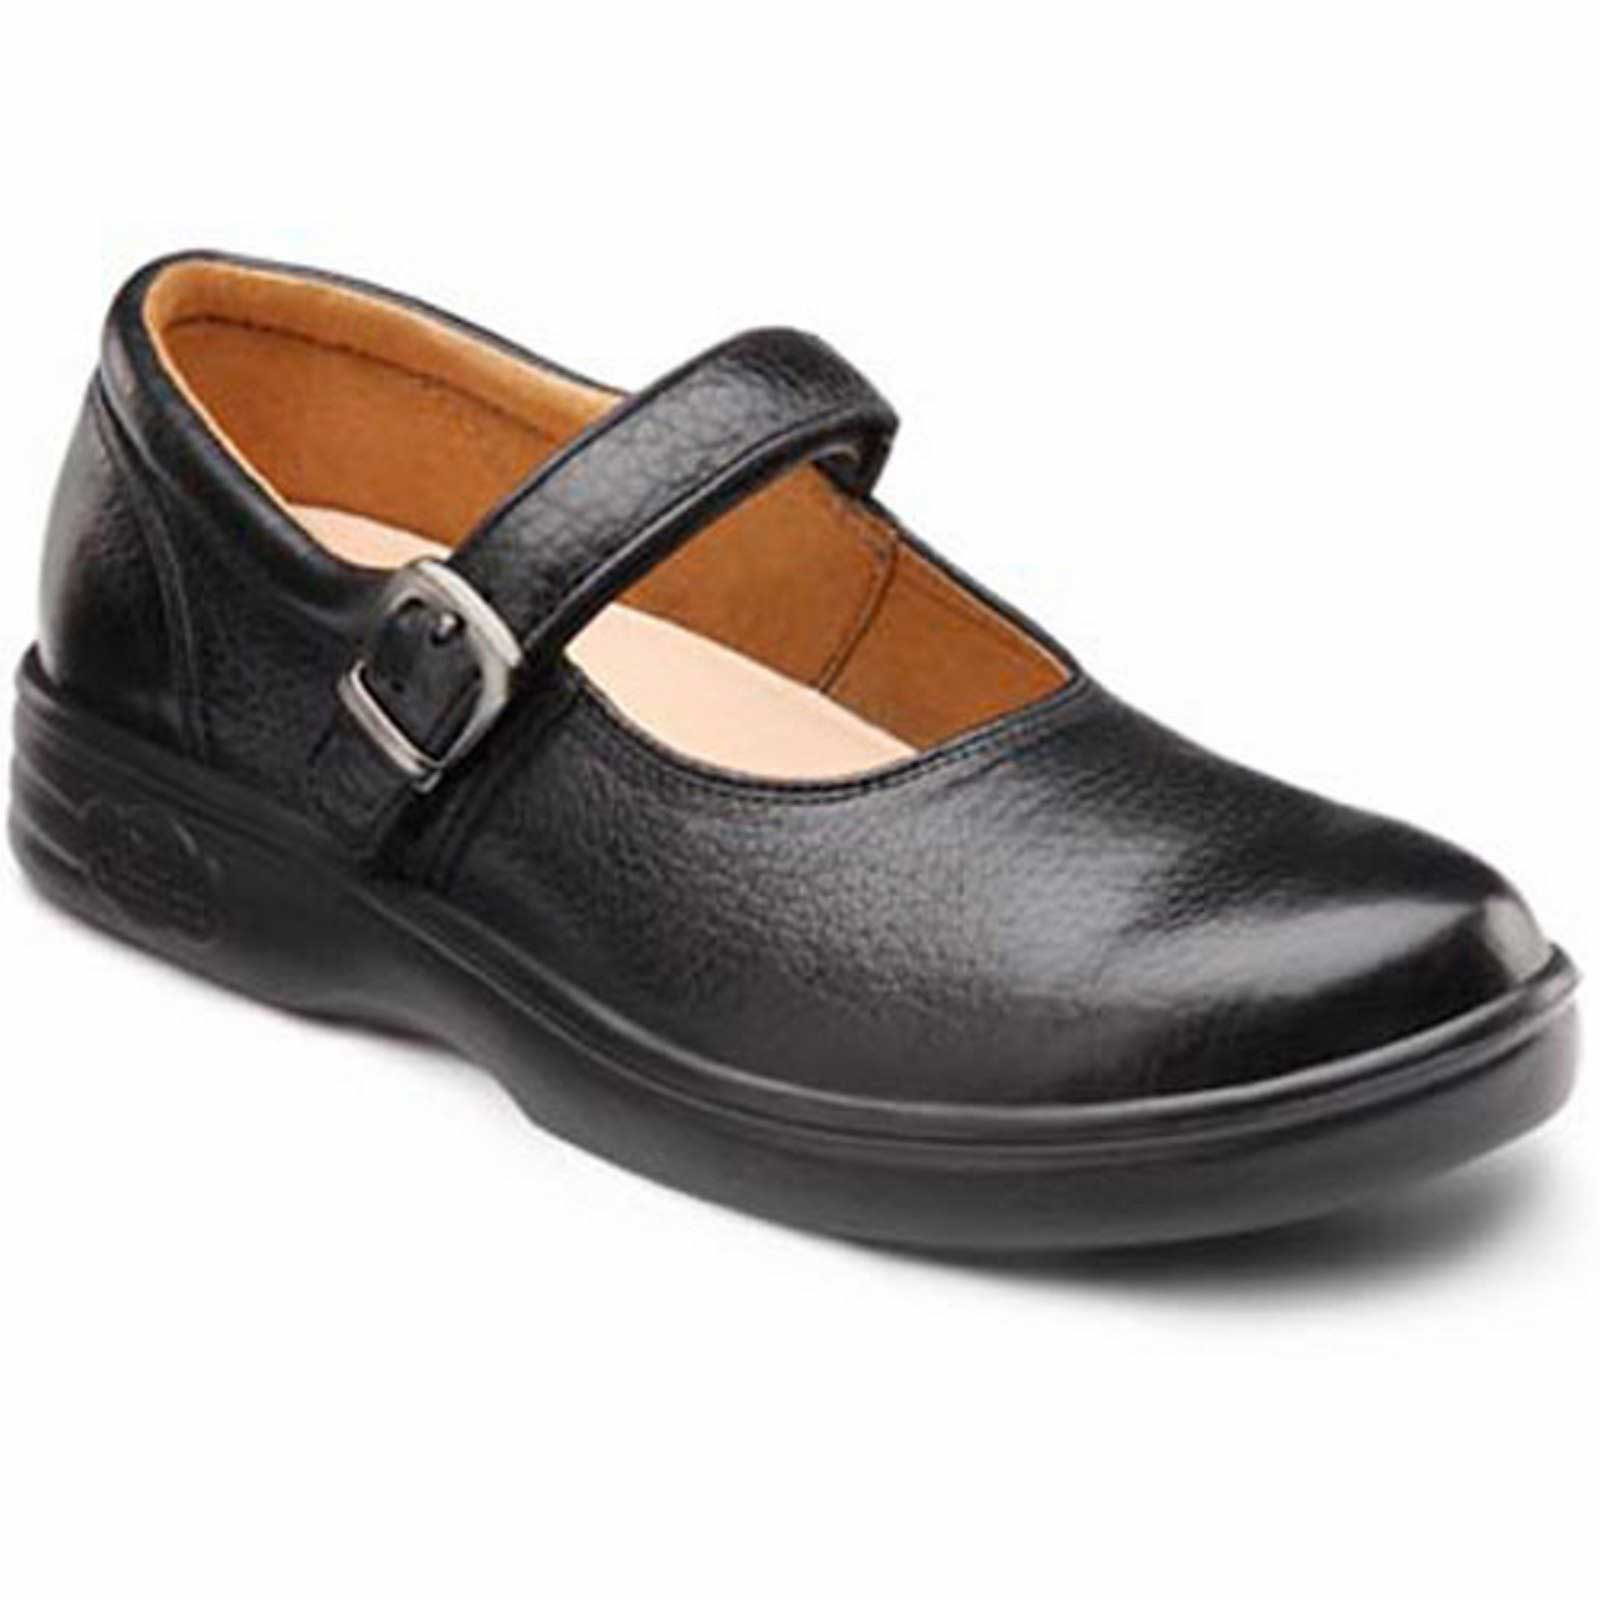 Dr Comfort Shoes - Merry Jane - Women's Therapeutic Diabetic Shoe with Gel Plus Inserts - Casual and Dress - Medium (A-B) - Extr at Sears.com